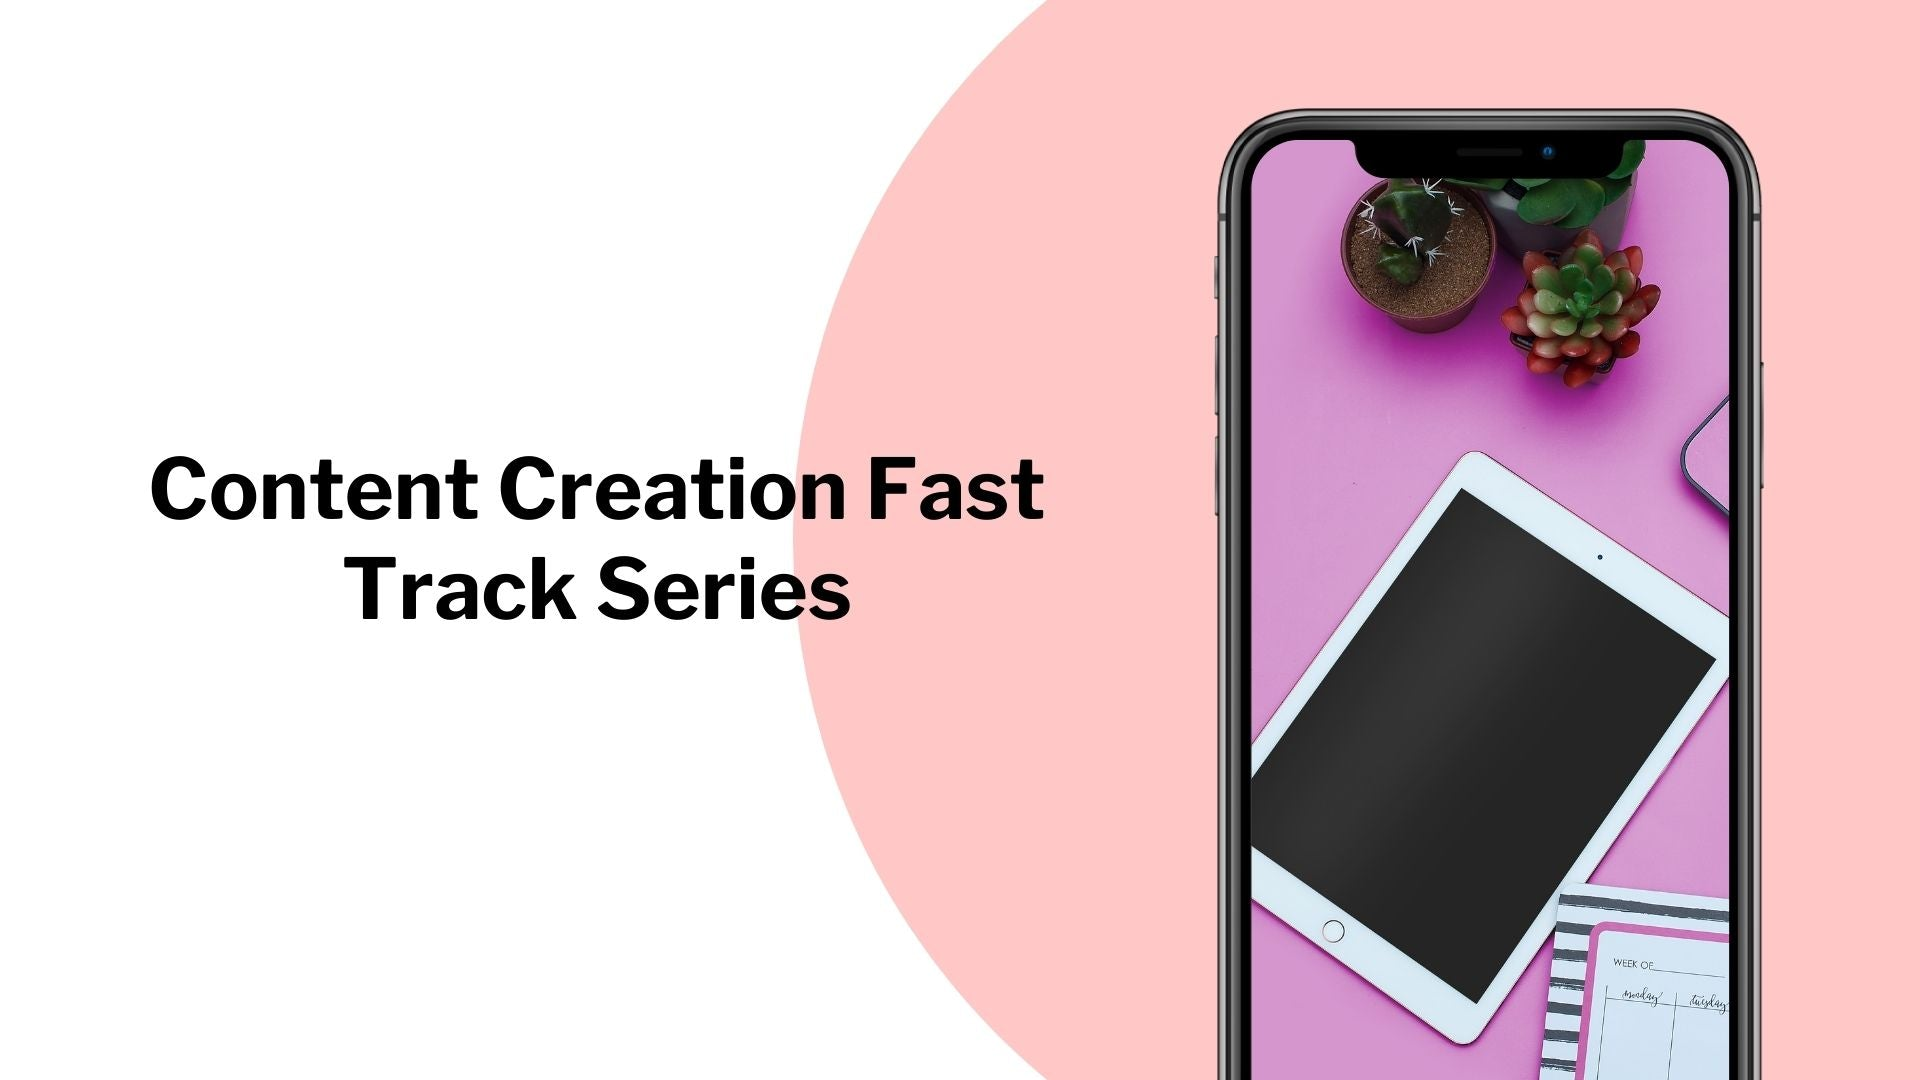 Content Creation Fast Track Series